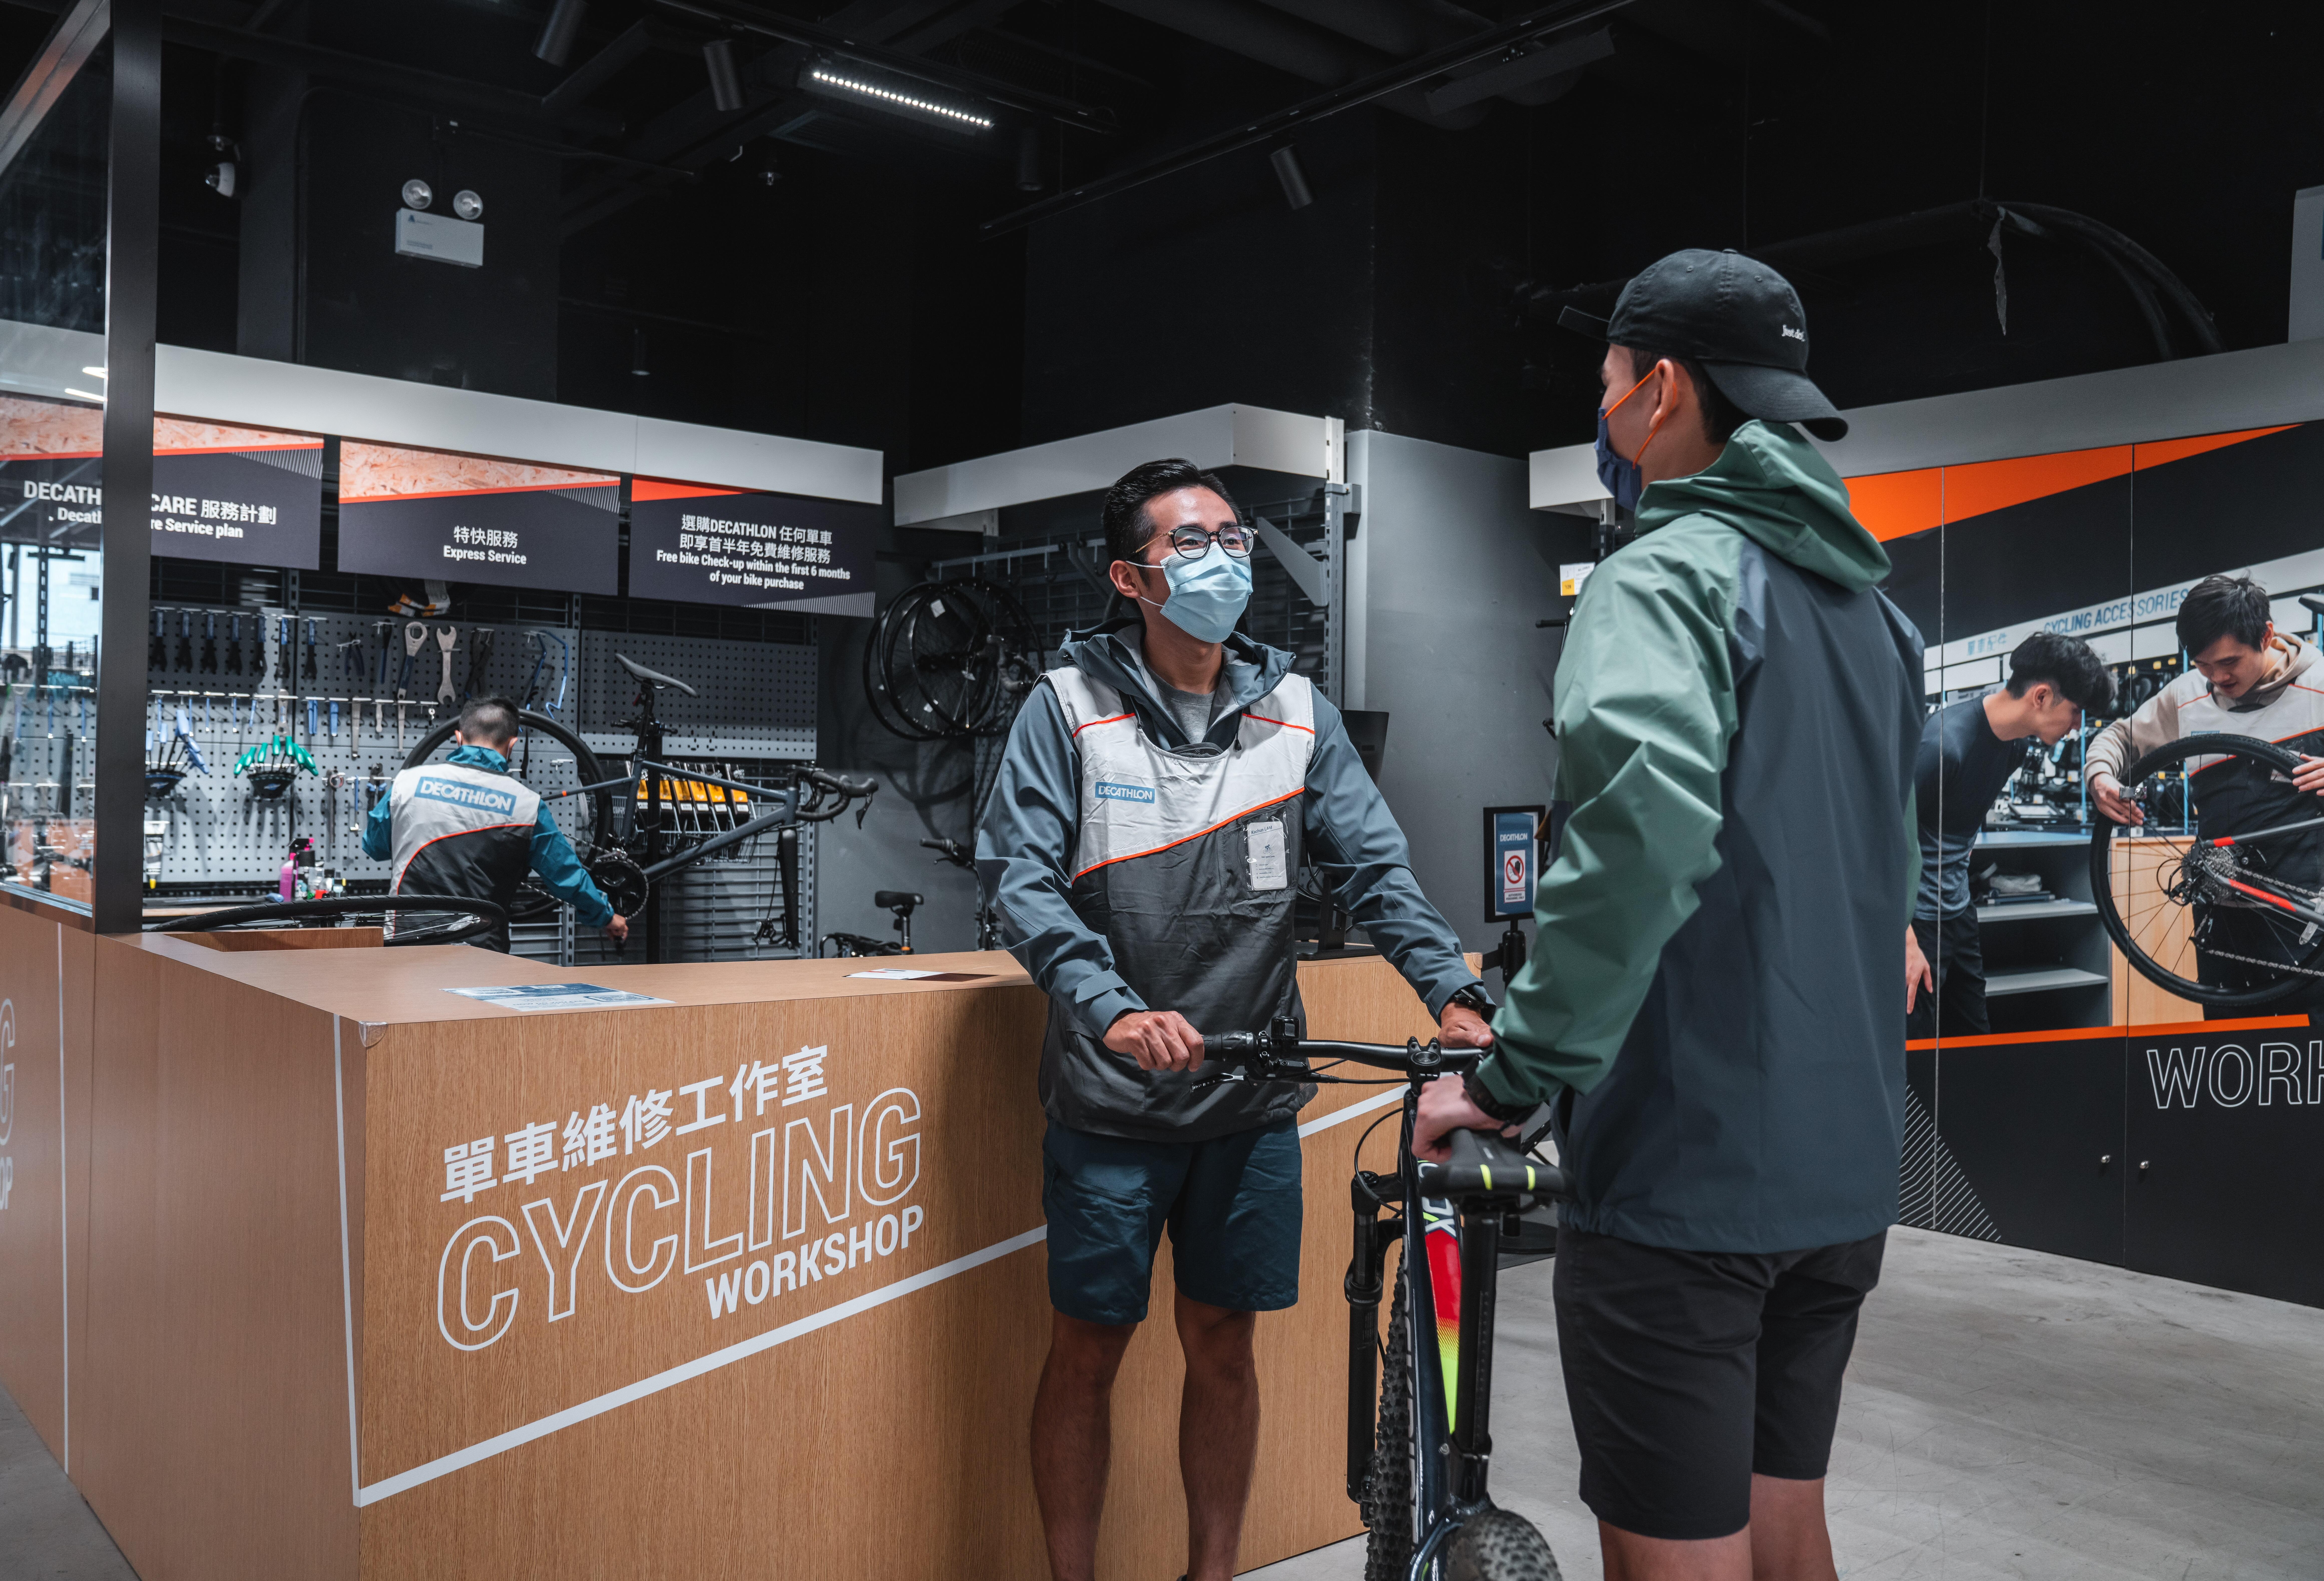 Decathlon Care can make you understand more about your bike's condition